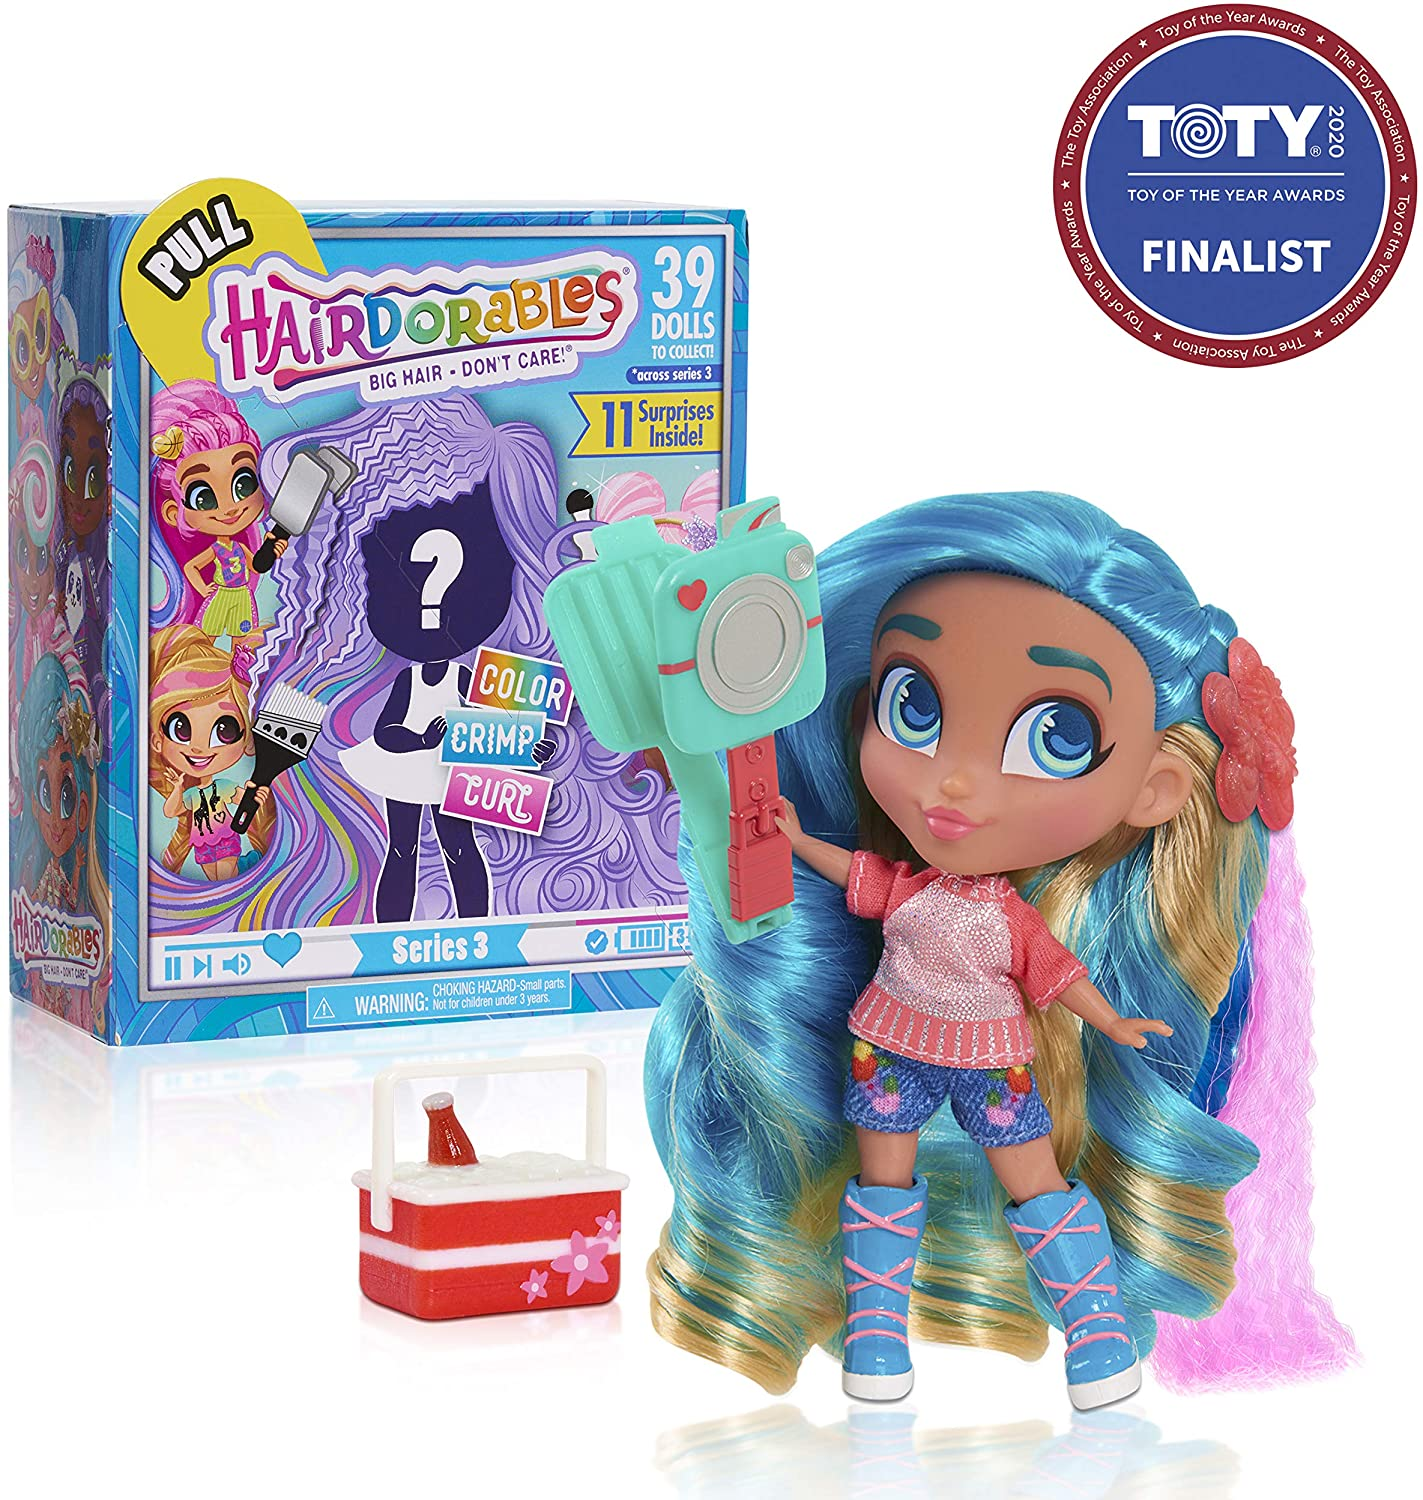 Hairdorables Collectible Dolls Series 3